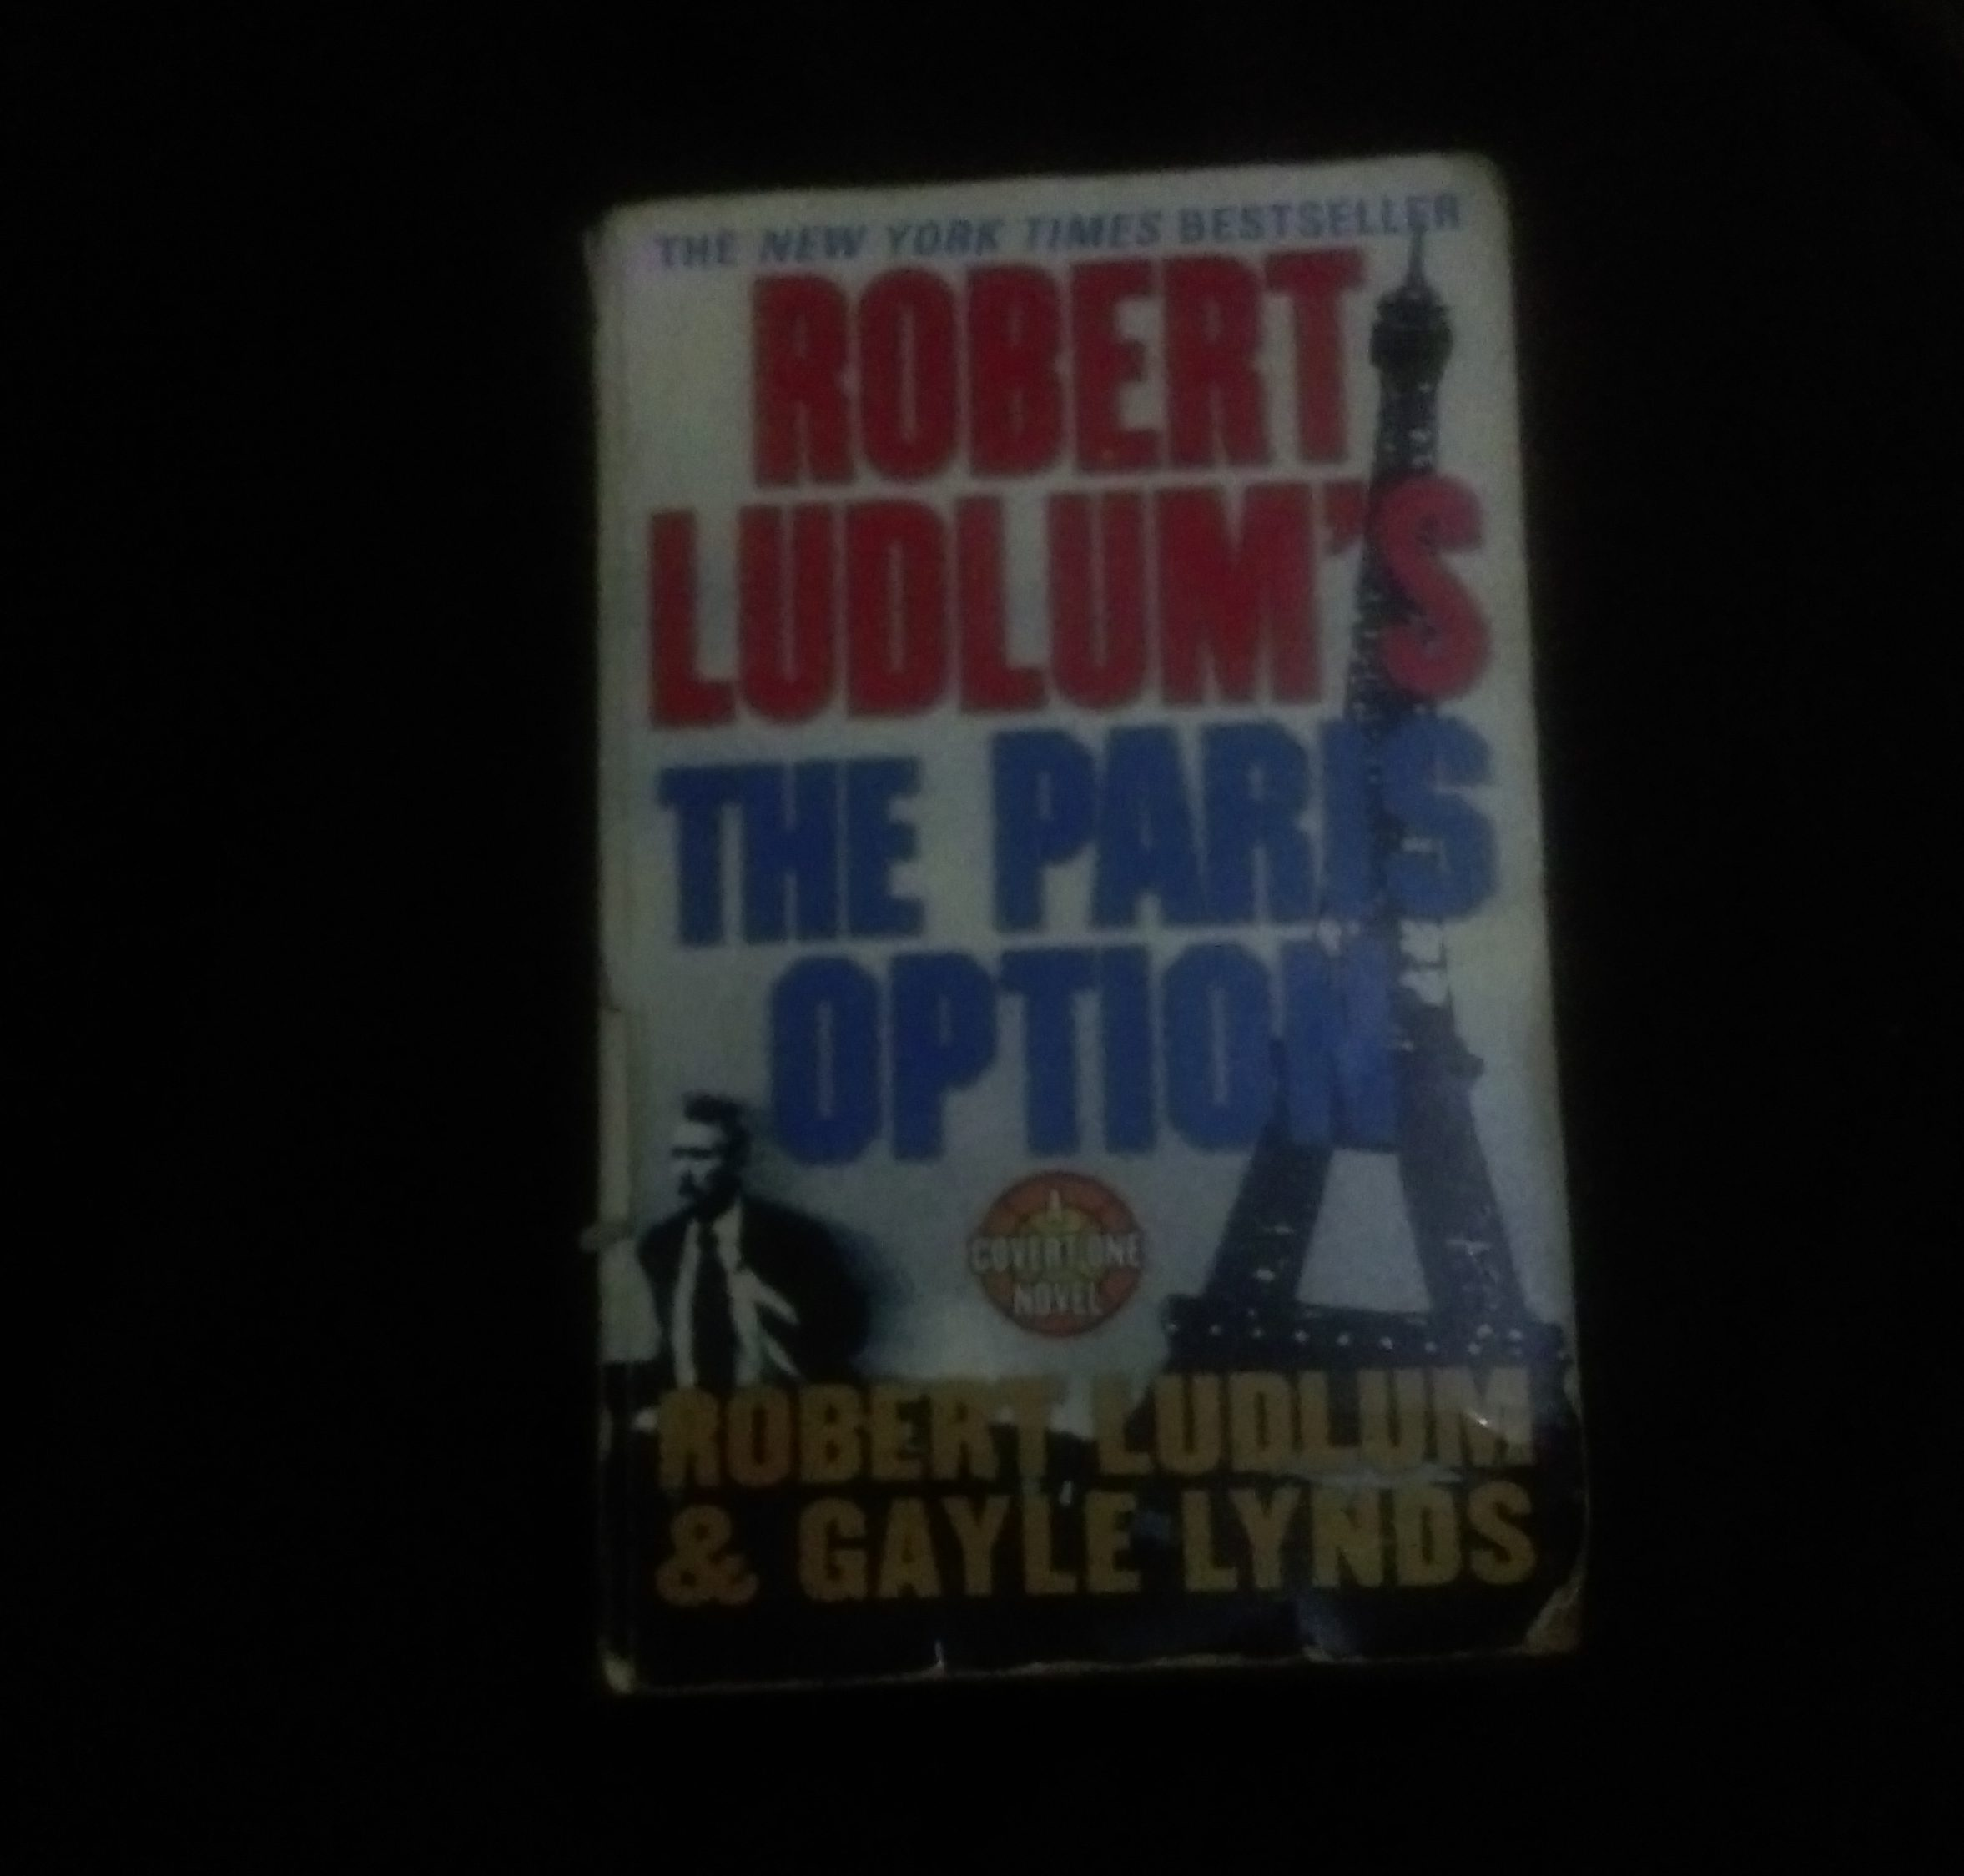 Rober Ludlum The Paris Option